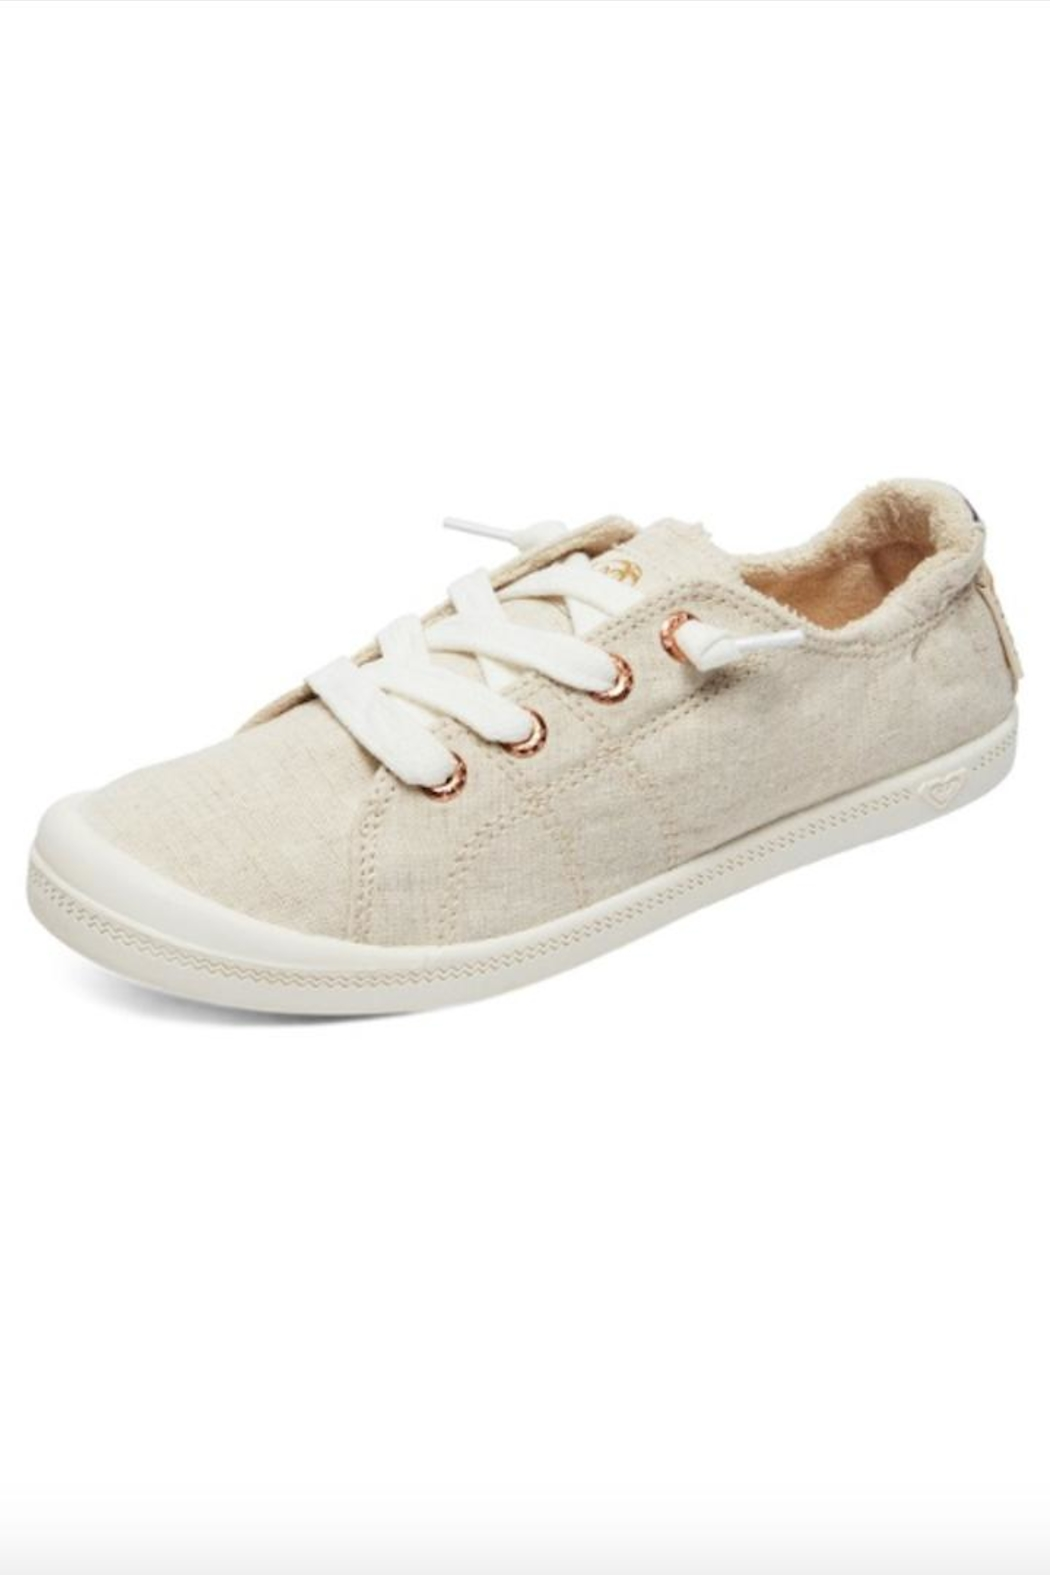 Roxy Slip-On Canvas Shoes - Main Image